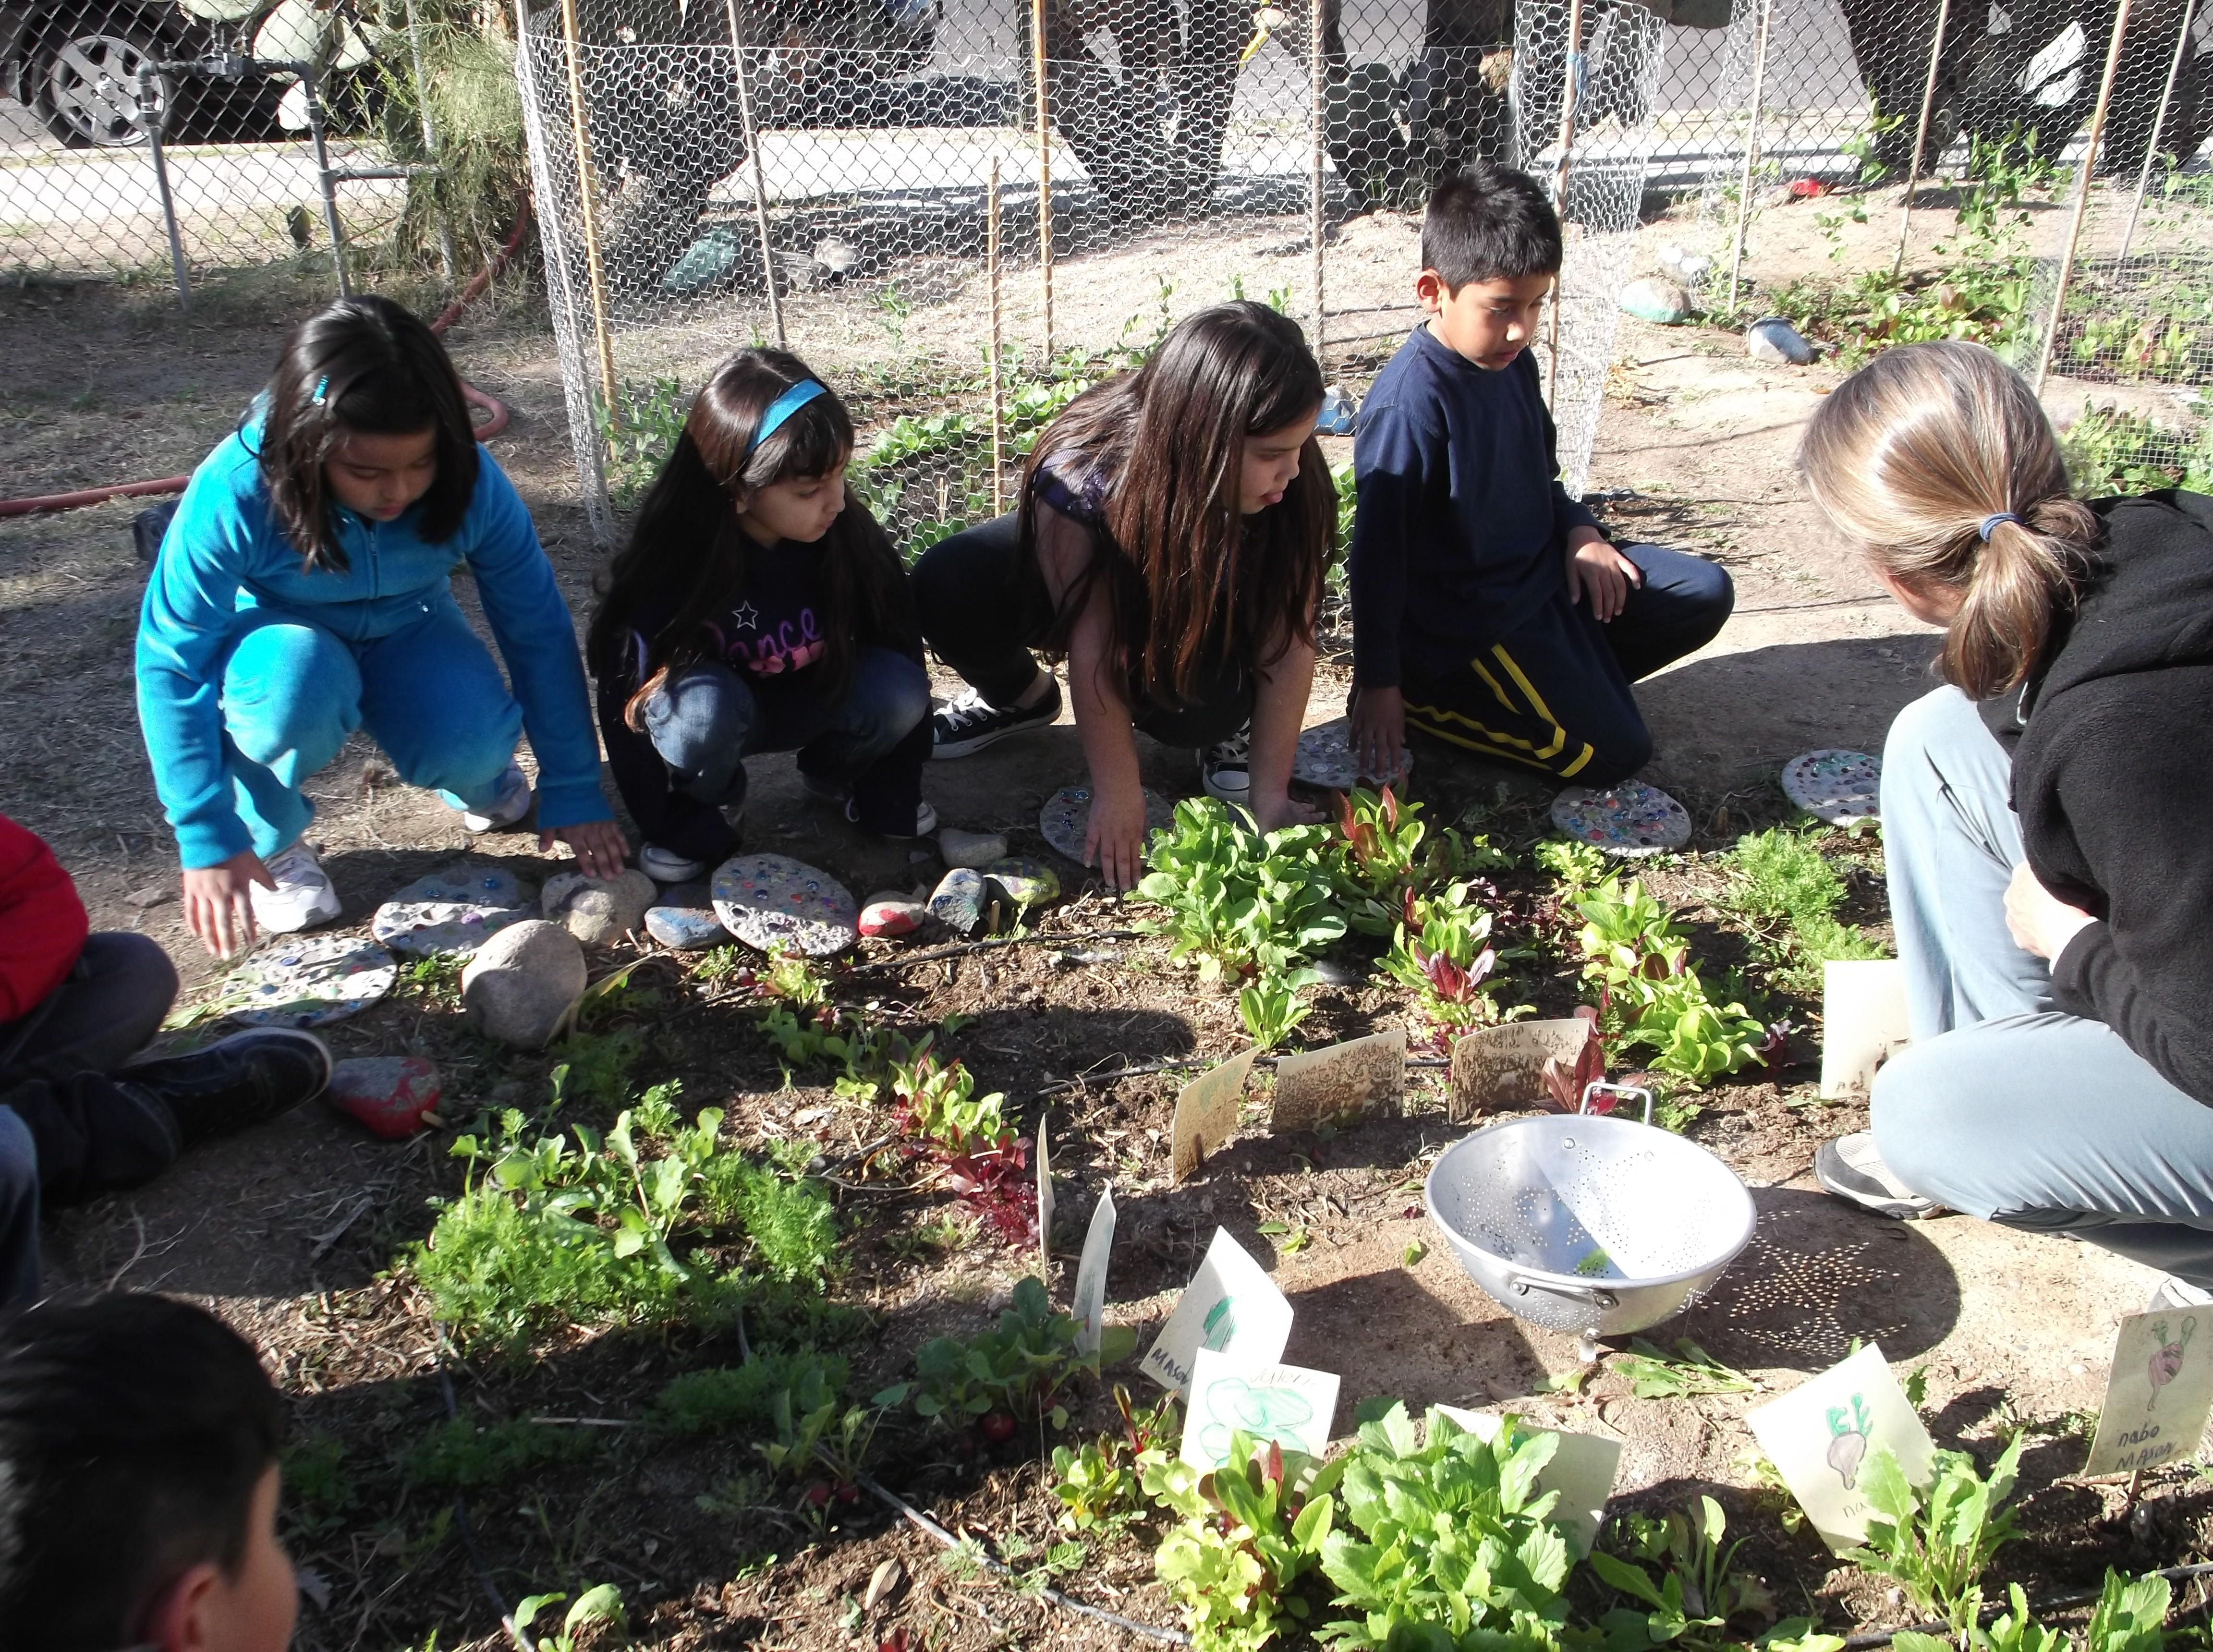 "Julie is fr. Davis Bilingual Elementary Magnet School in Tucson, AZ. ""We currently have 5 keyhole beds & 4 long beds for vegetable gardens. We would like to dig more sunken beds, mix them w/ quality compost, plant & harvest during class time, after school & on our monthly community work days. We would also like to start providing a weekly farmer's market for our school community with our gardens' harvest throughout the school year."" #diggingdeeper"